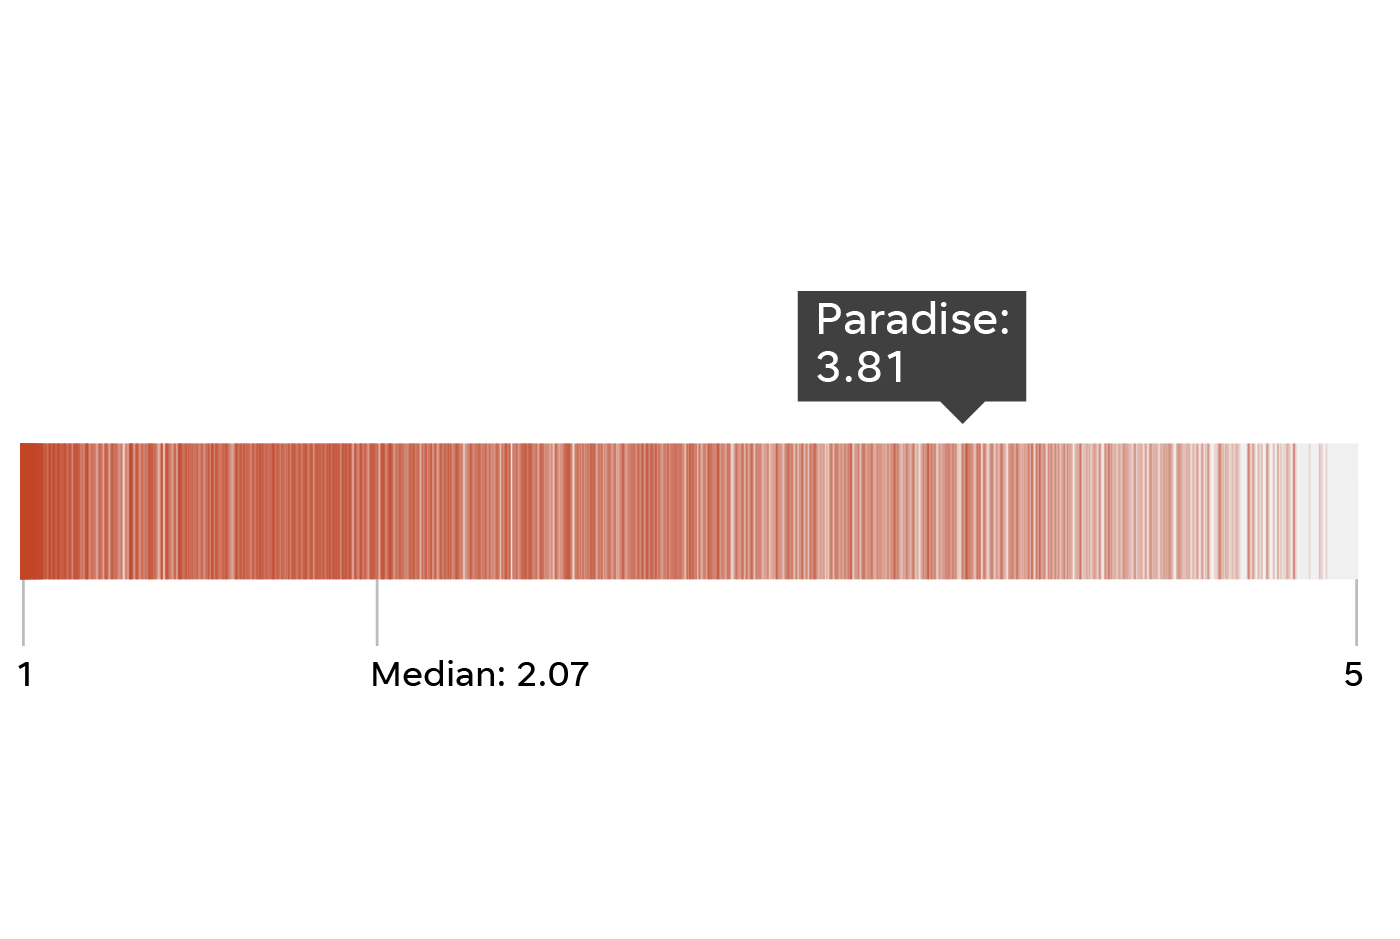 The wildfire hazard score for Paradise, Calif. is 3.81.